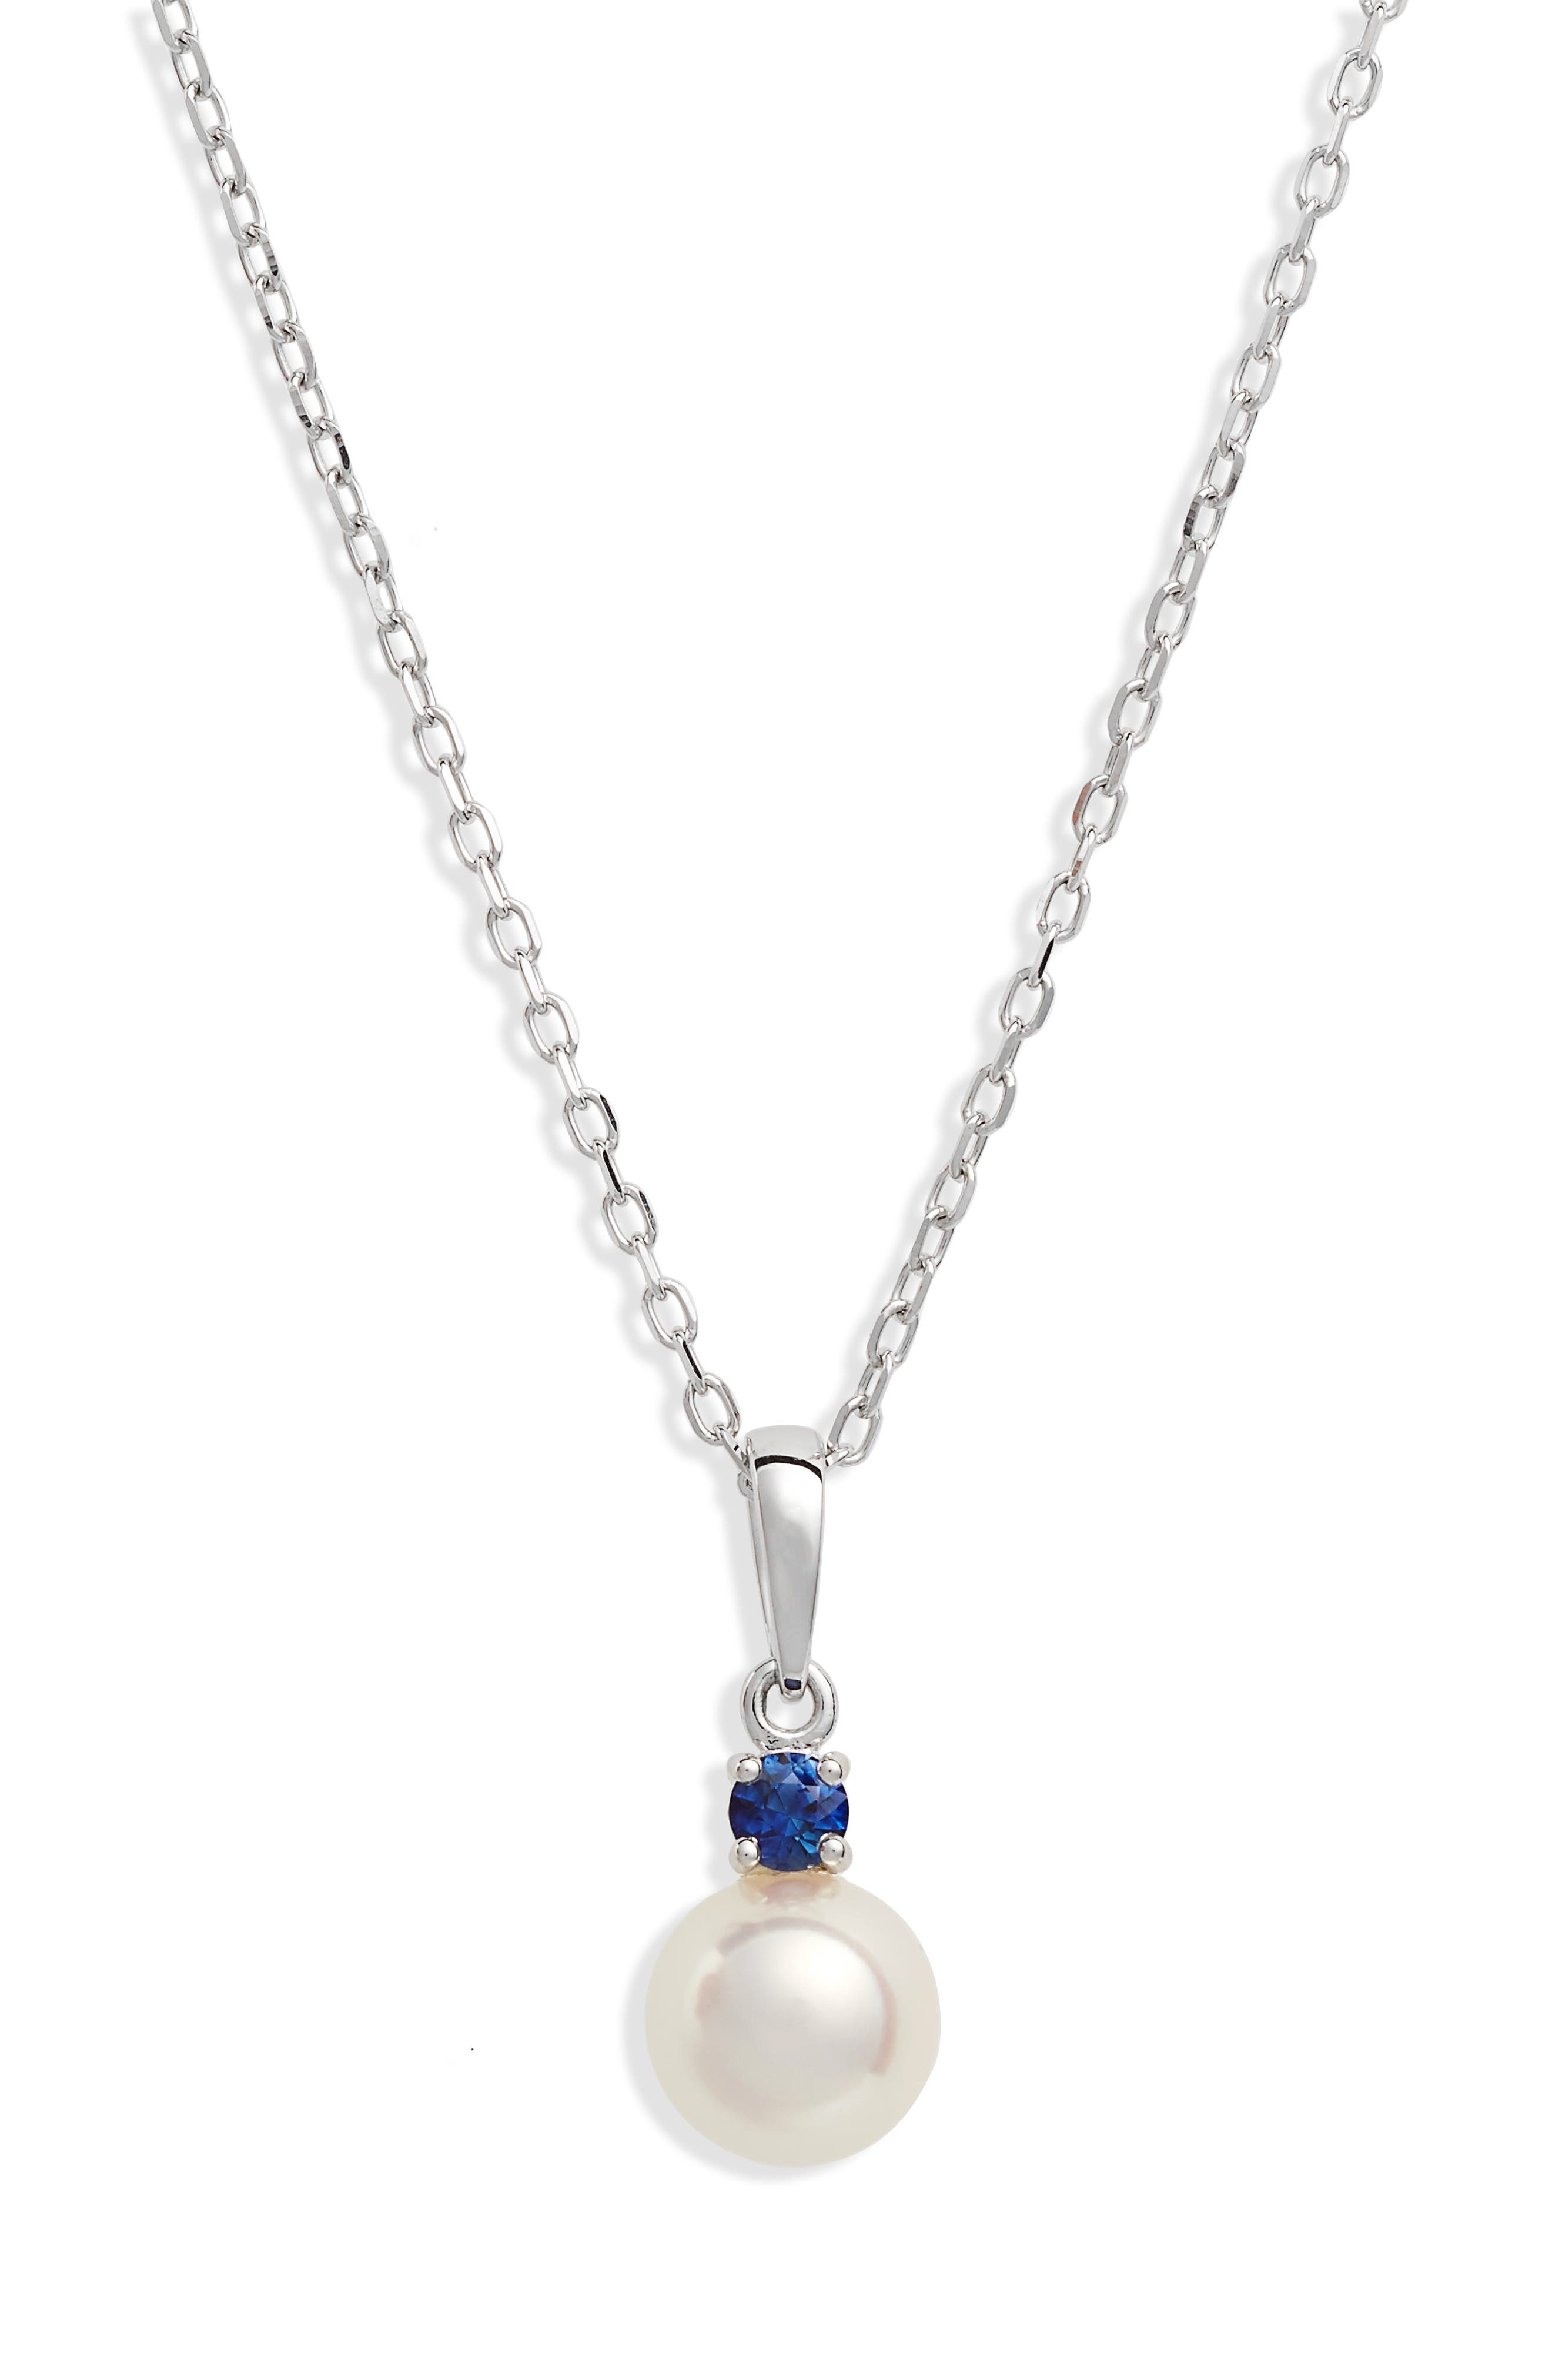 Akoya Cultured Pearl & Sapphire Pendant Necklace,                             Main thumbnail 1, color,                             711